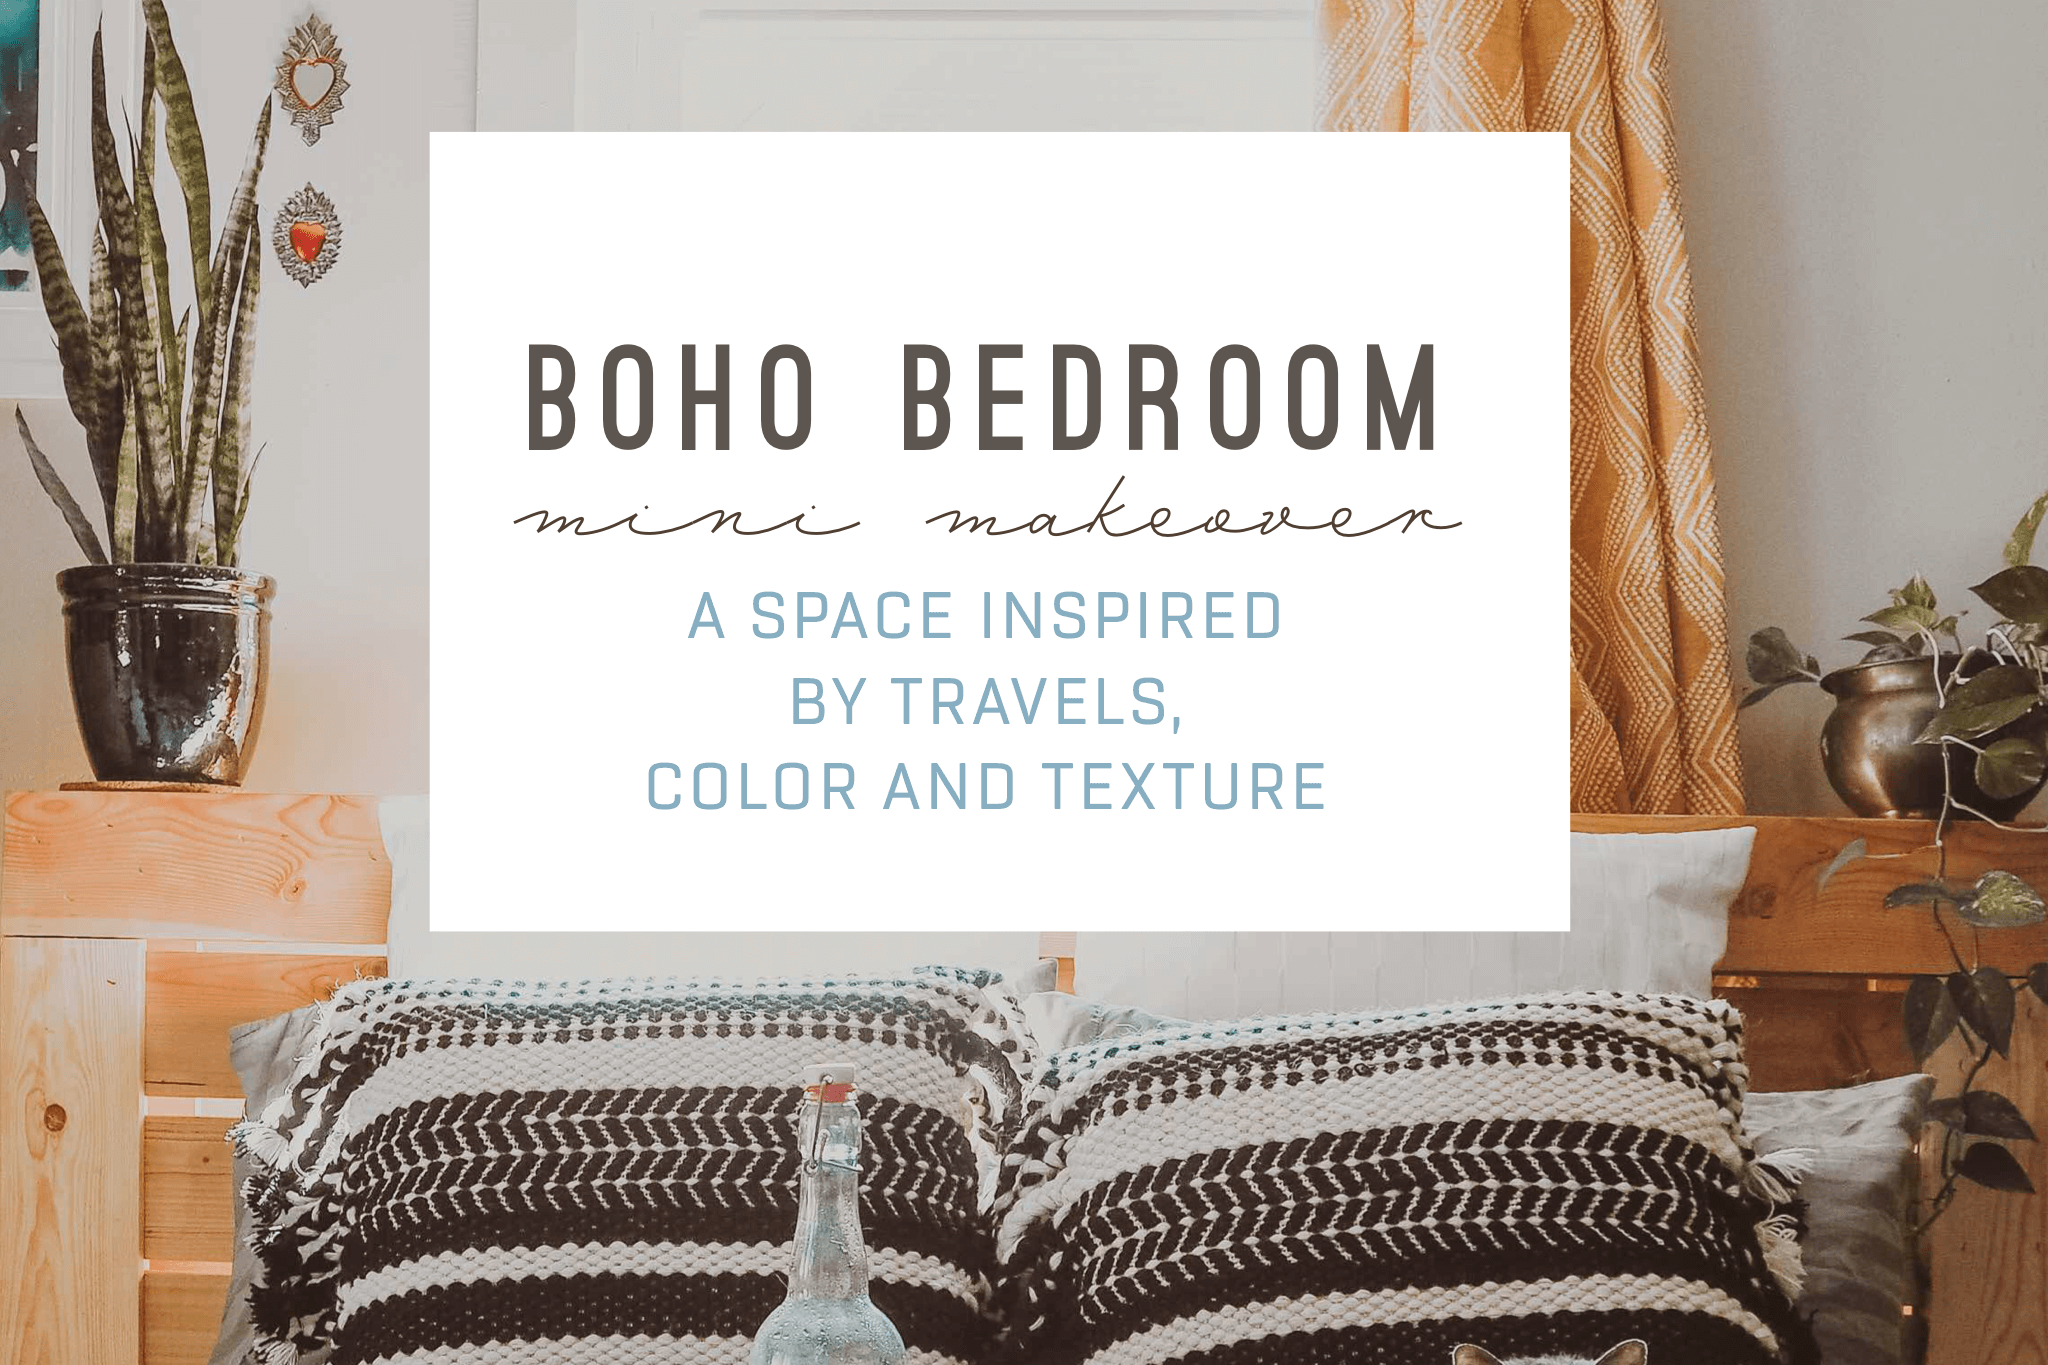 boho bedroom, mini makeover, luxe style, jungalow style, plant magic